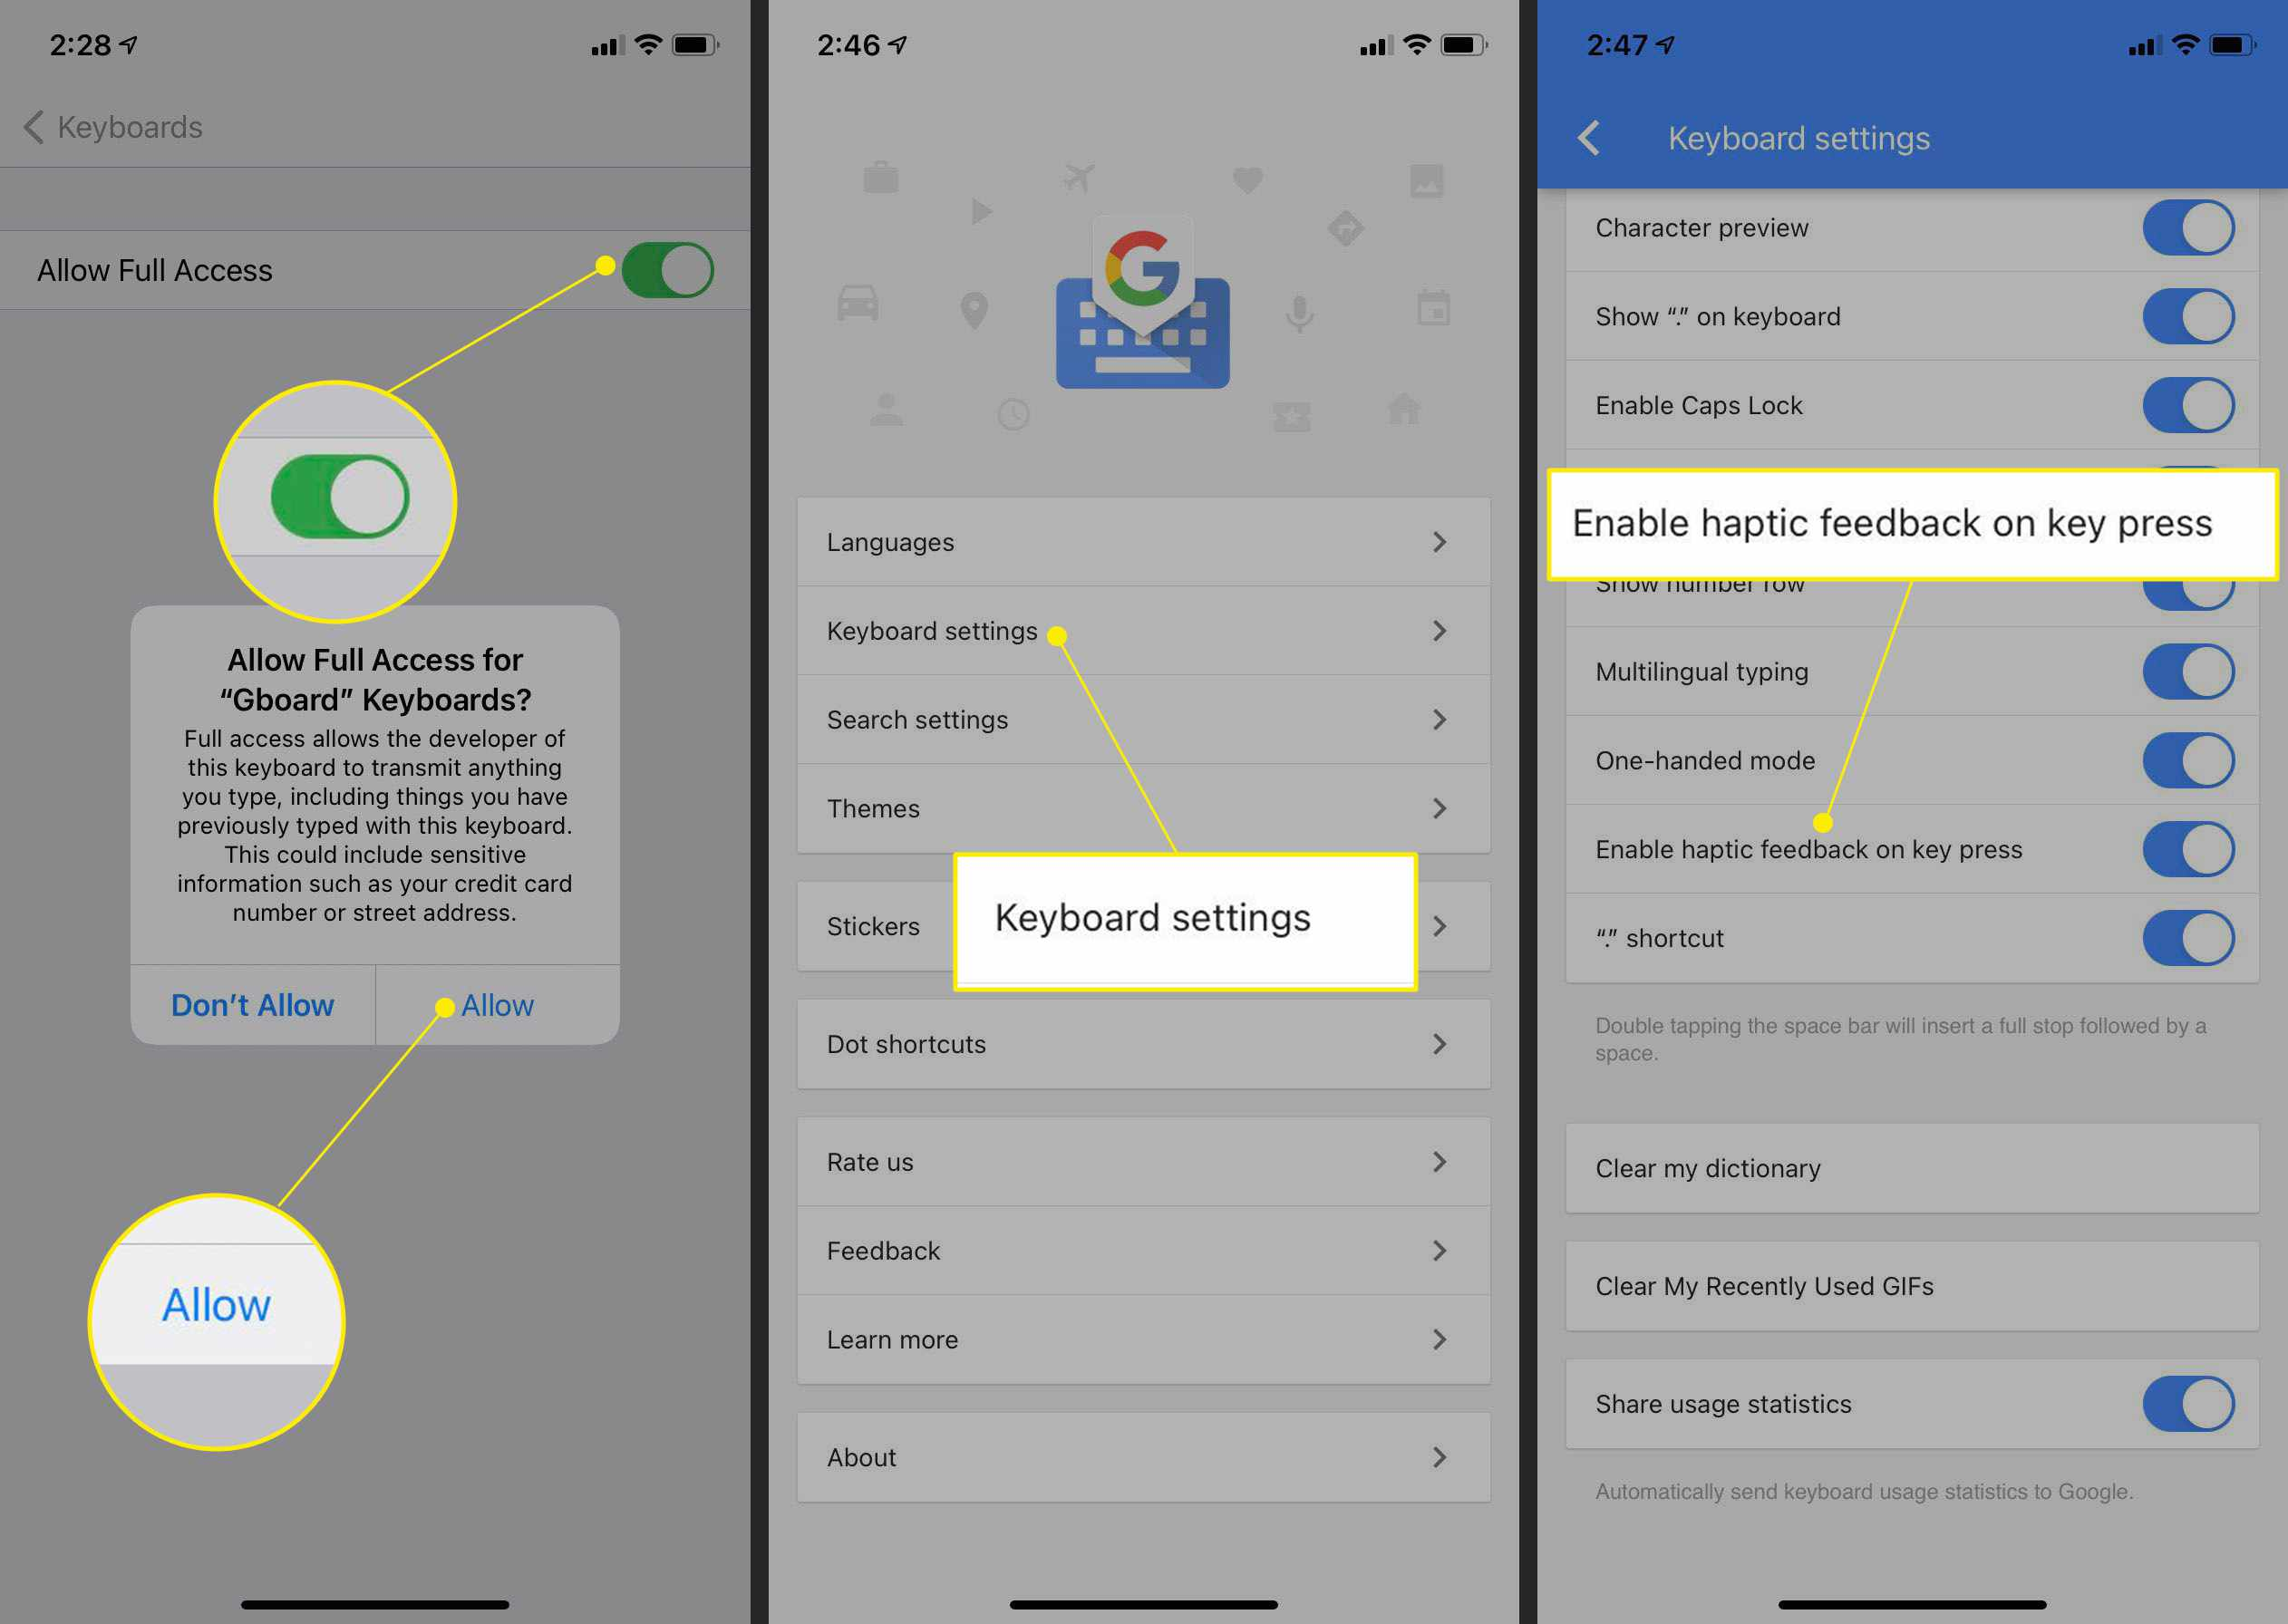 Gboard settings with Allow, Keyboard settings, and